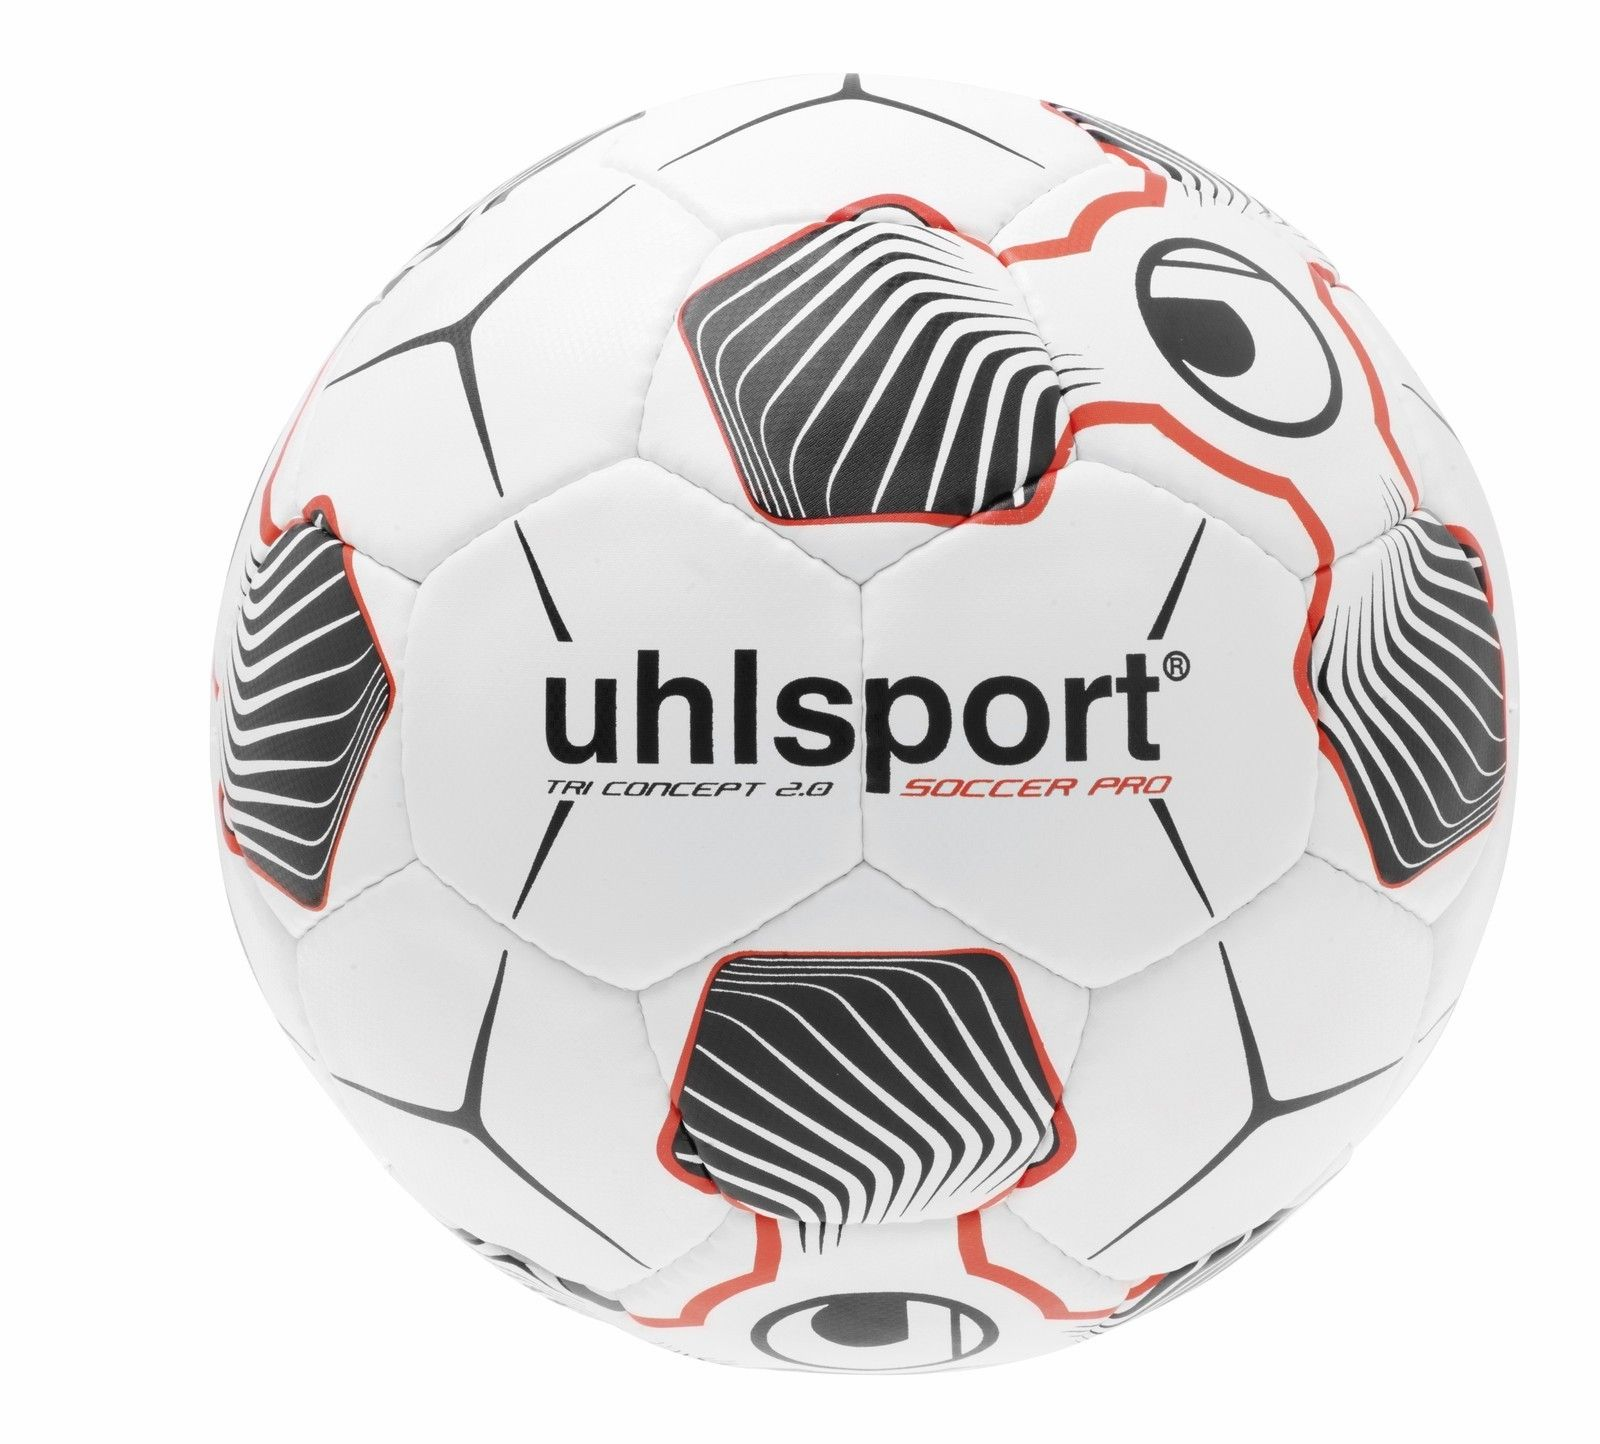 Sku 1001589014 34 95 Uhlsport Soccer Shipping Weight 0 5000kg